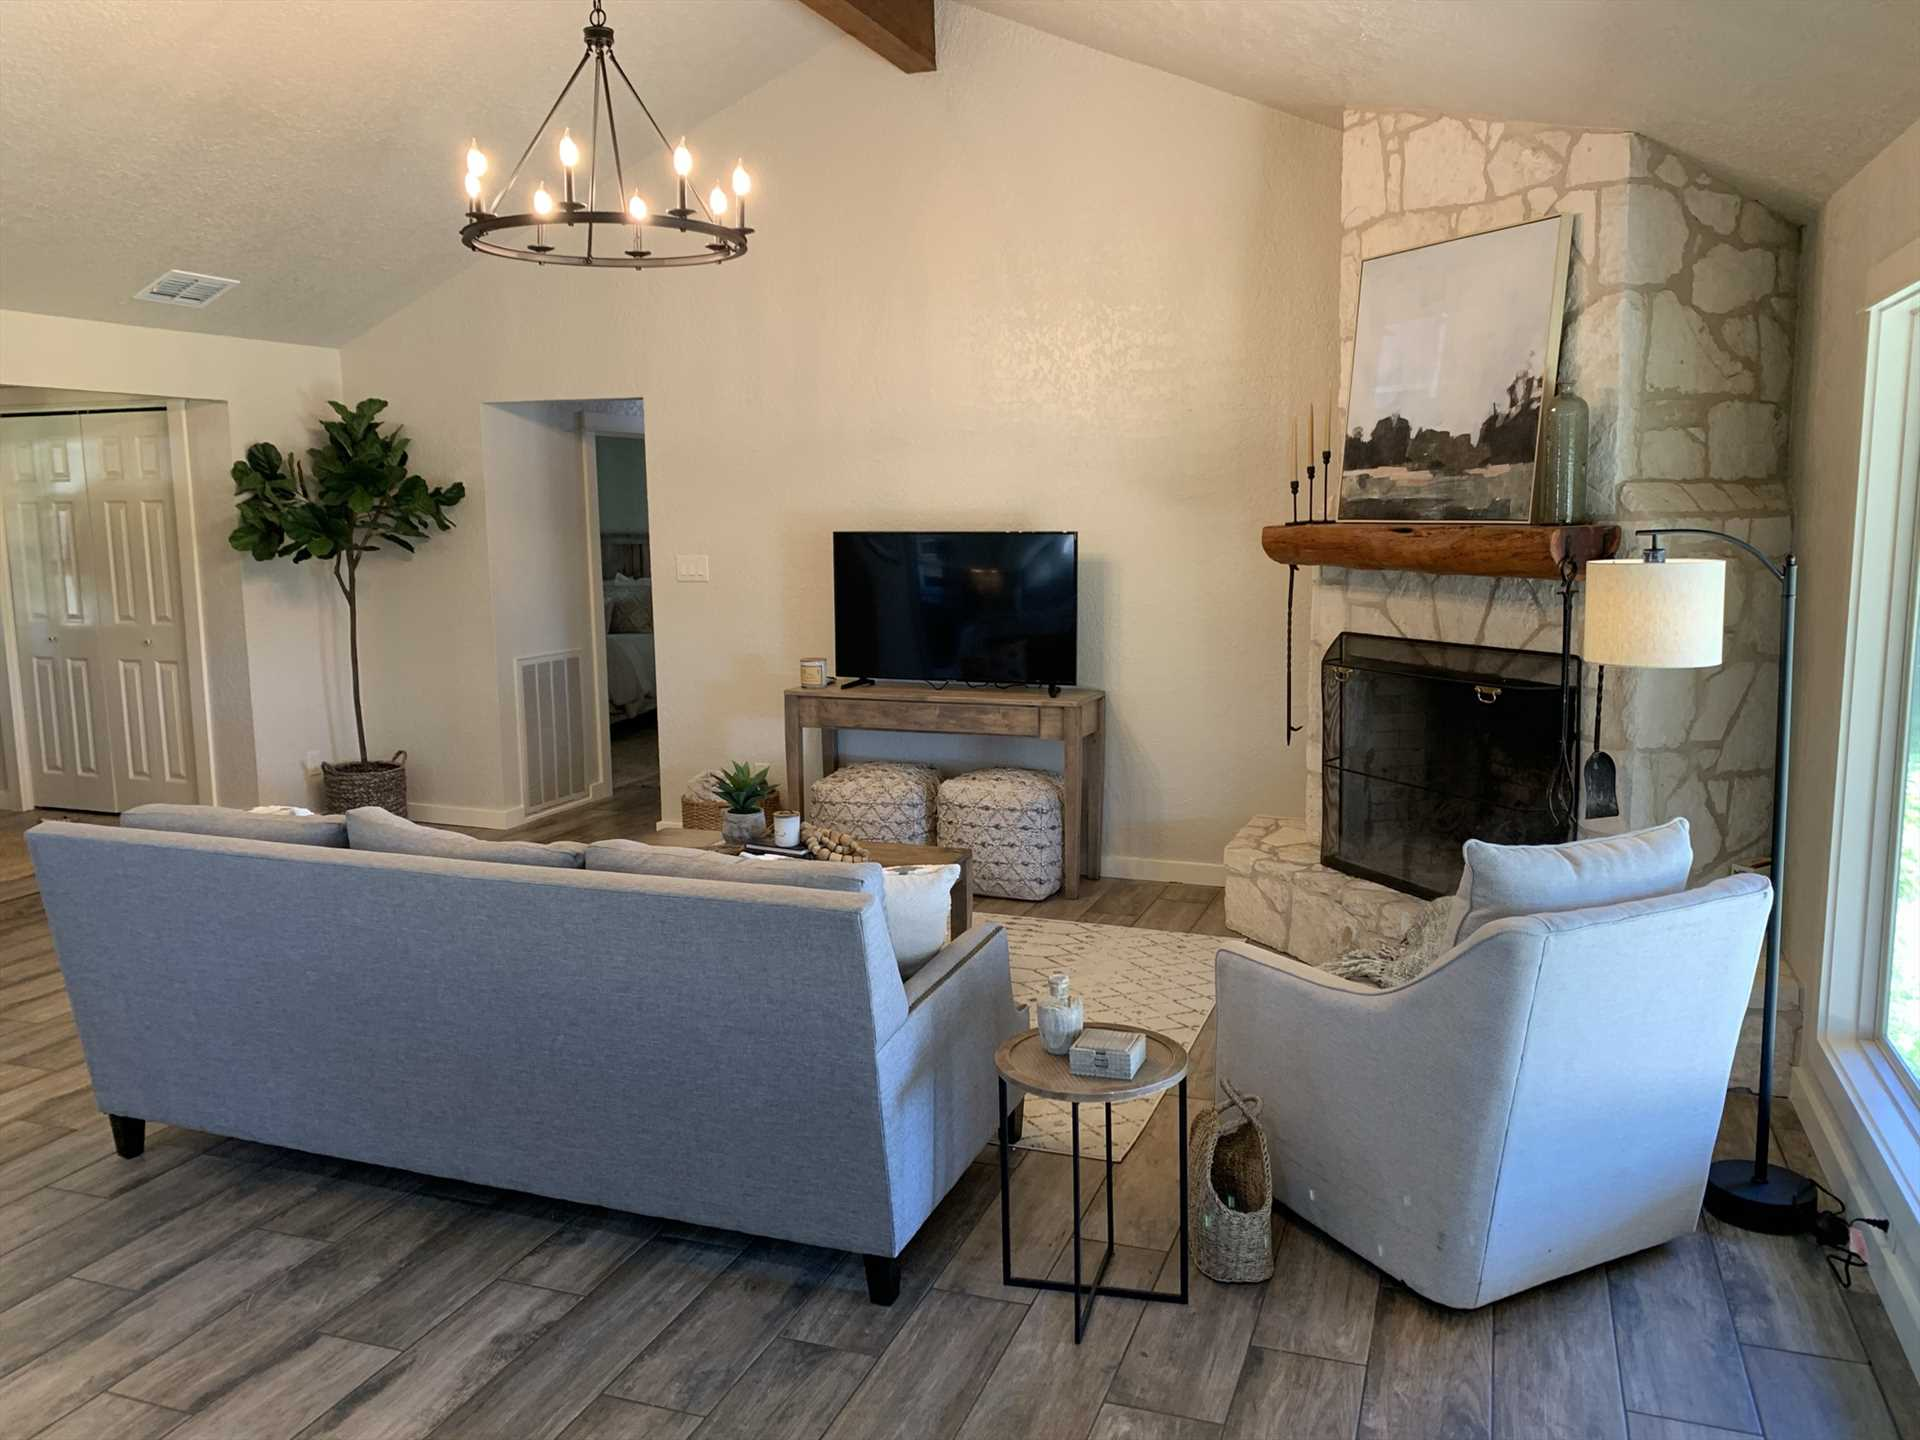 The entire house stays comfy with central air and heat, and chilly nights are kept at bay with the living area gas fireplace, too!